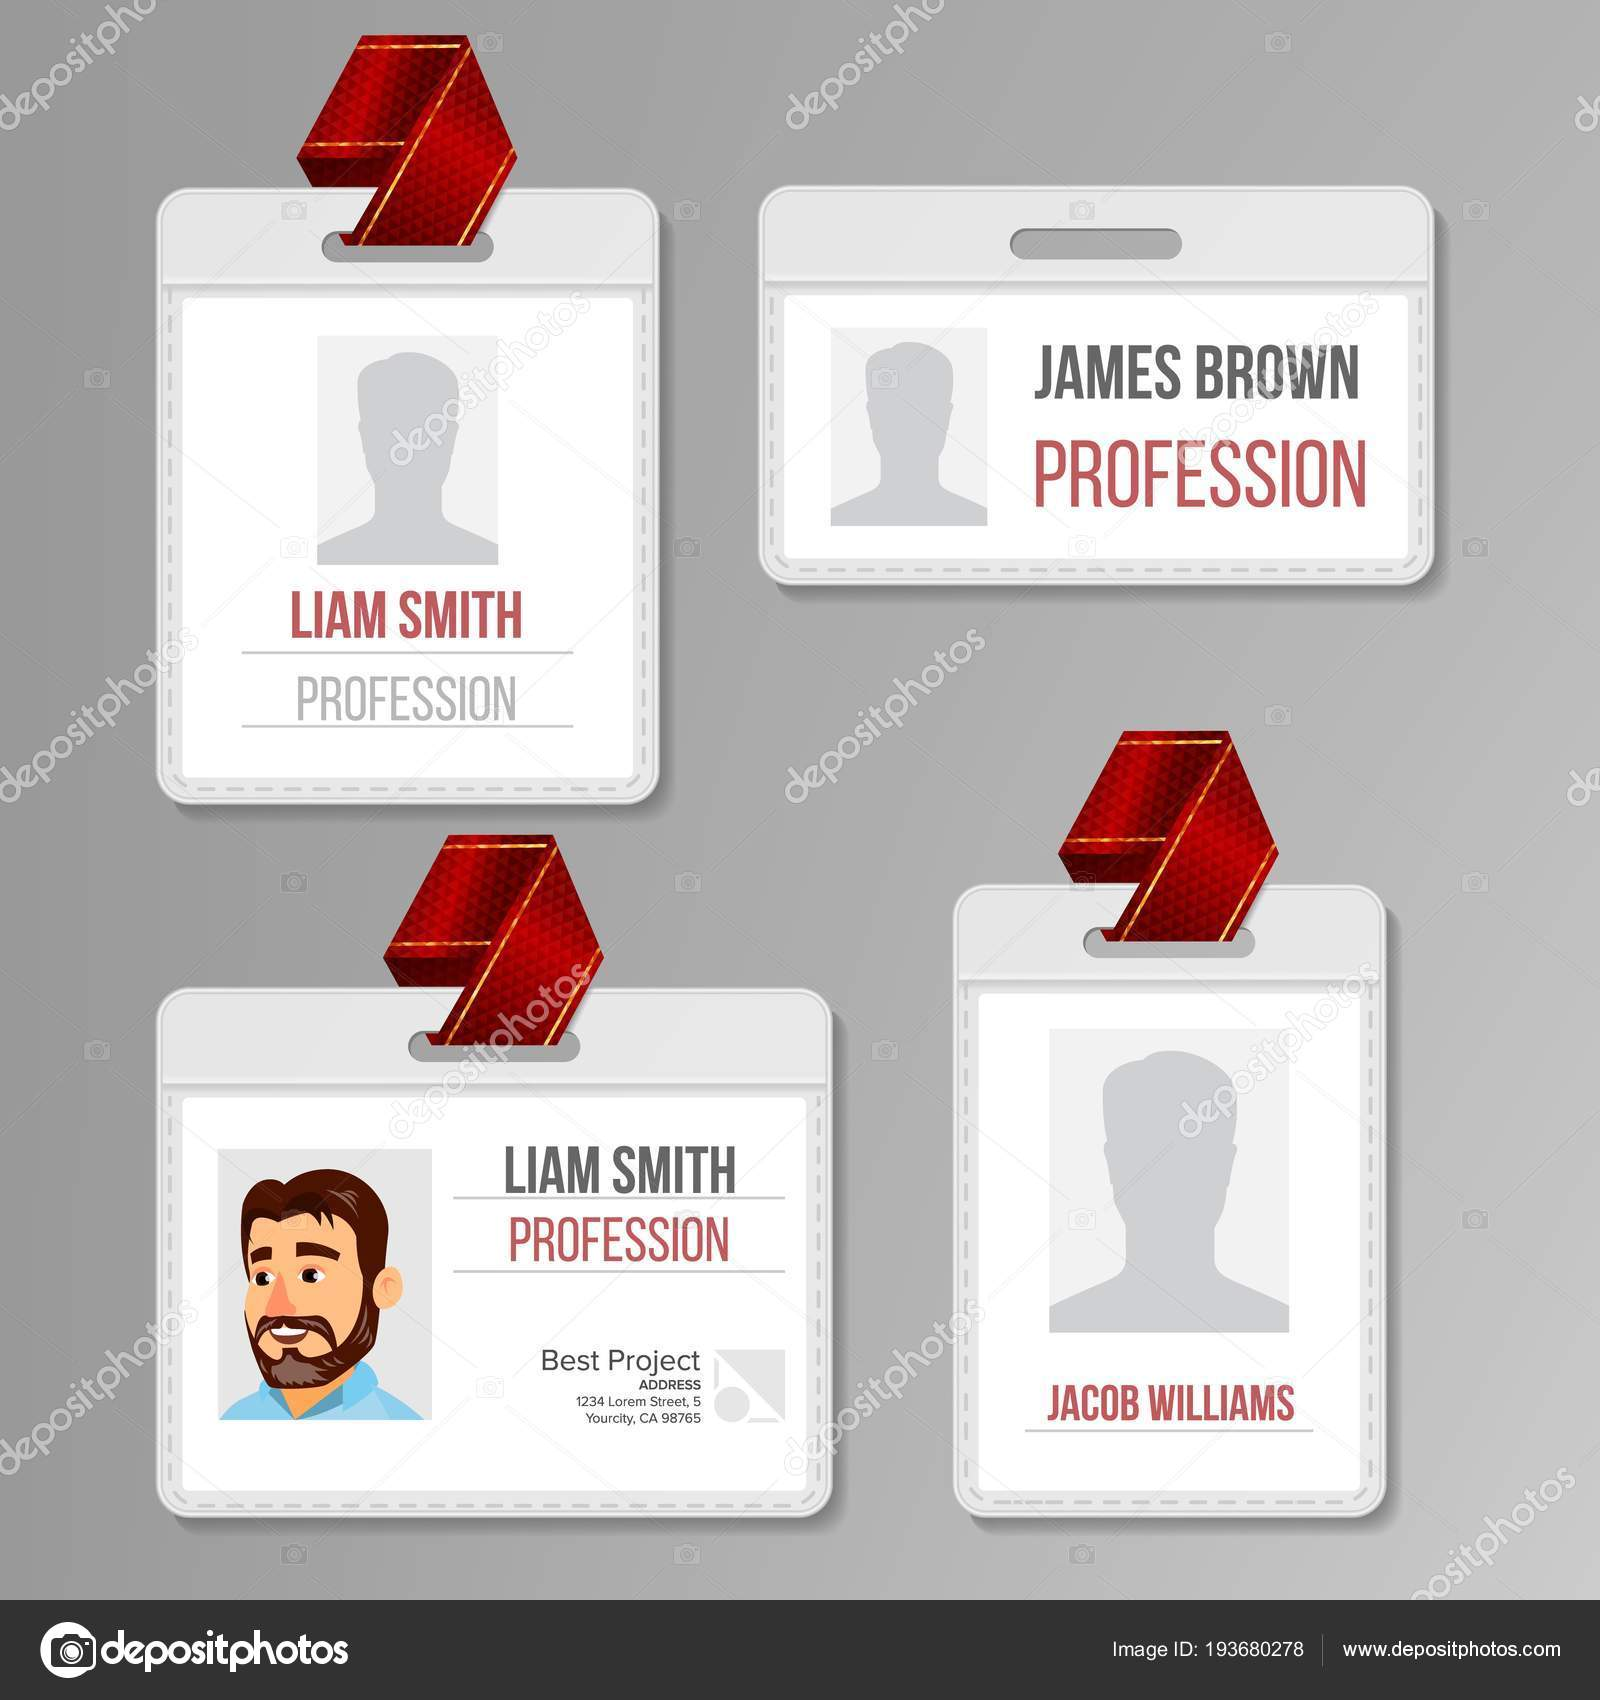 Identification Badge Set Vector. Id Card Blank. Name Template Profile Holder. Employee Identity. Human Badge Design. Person Isolated Illustration